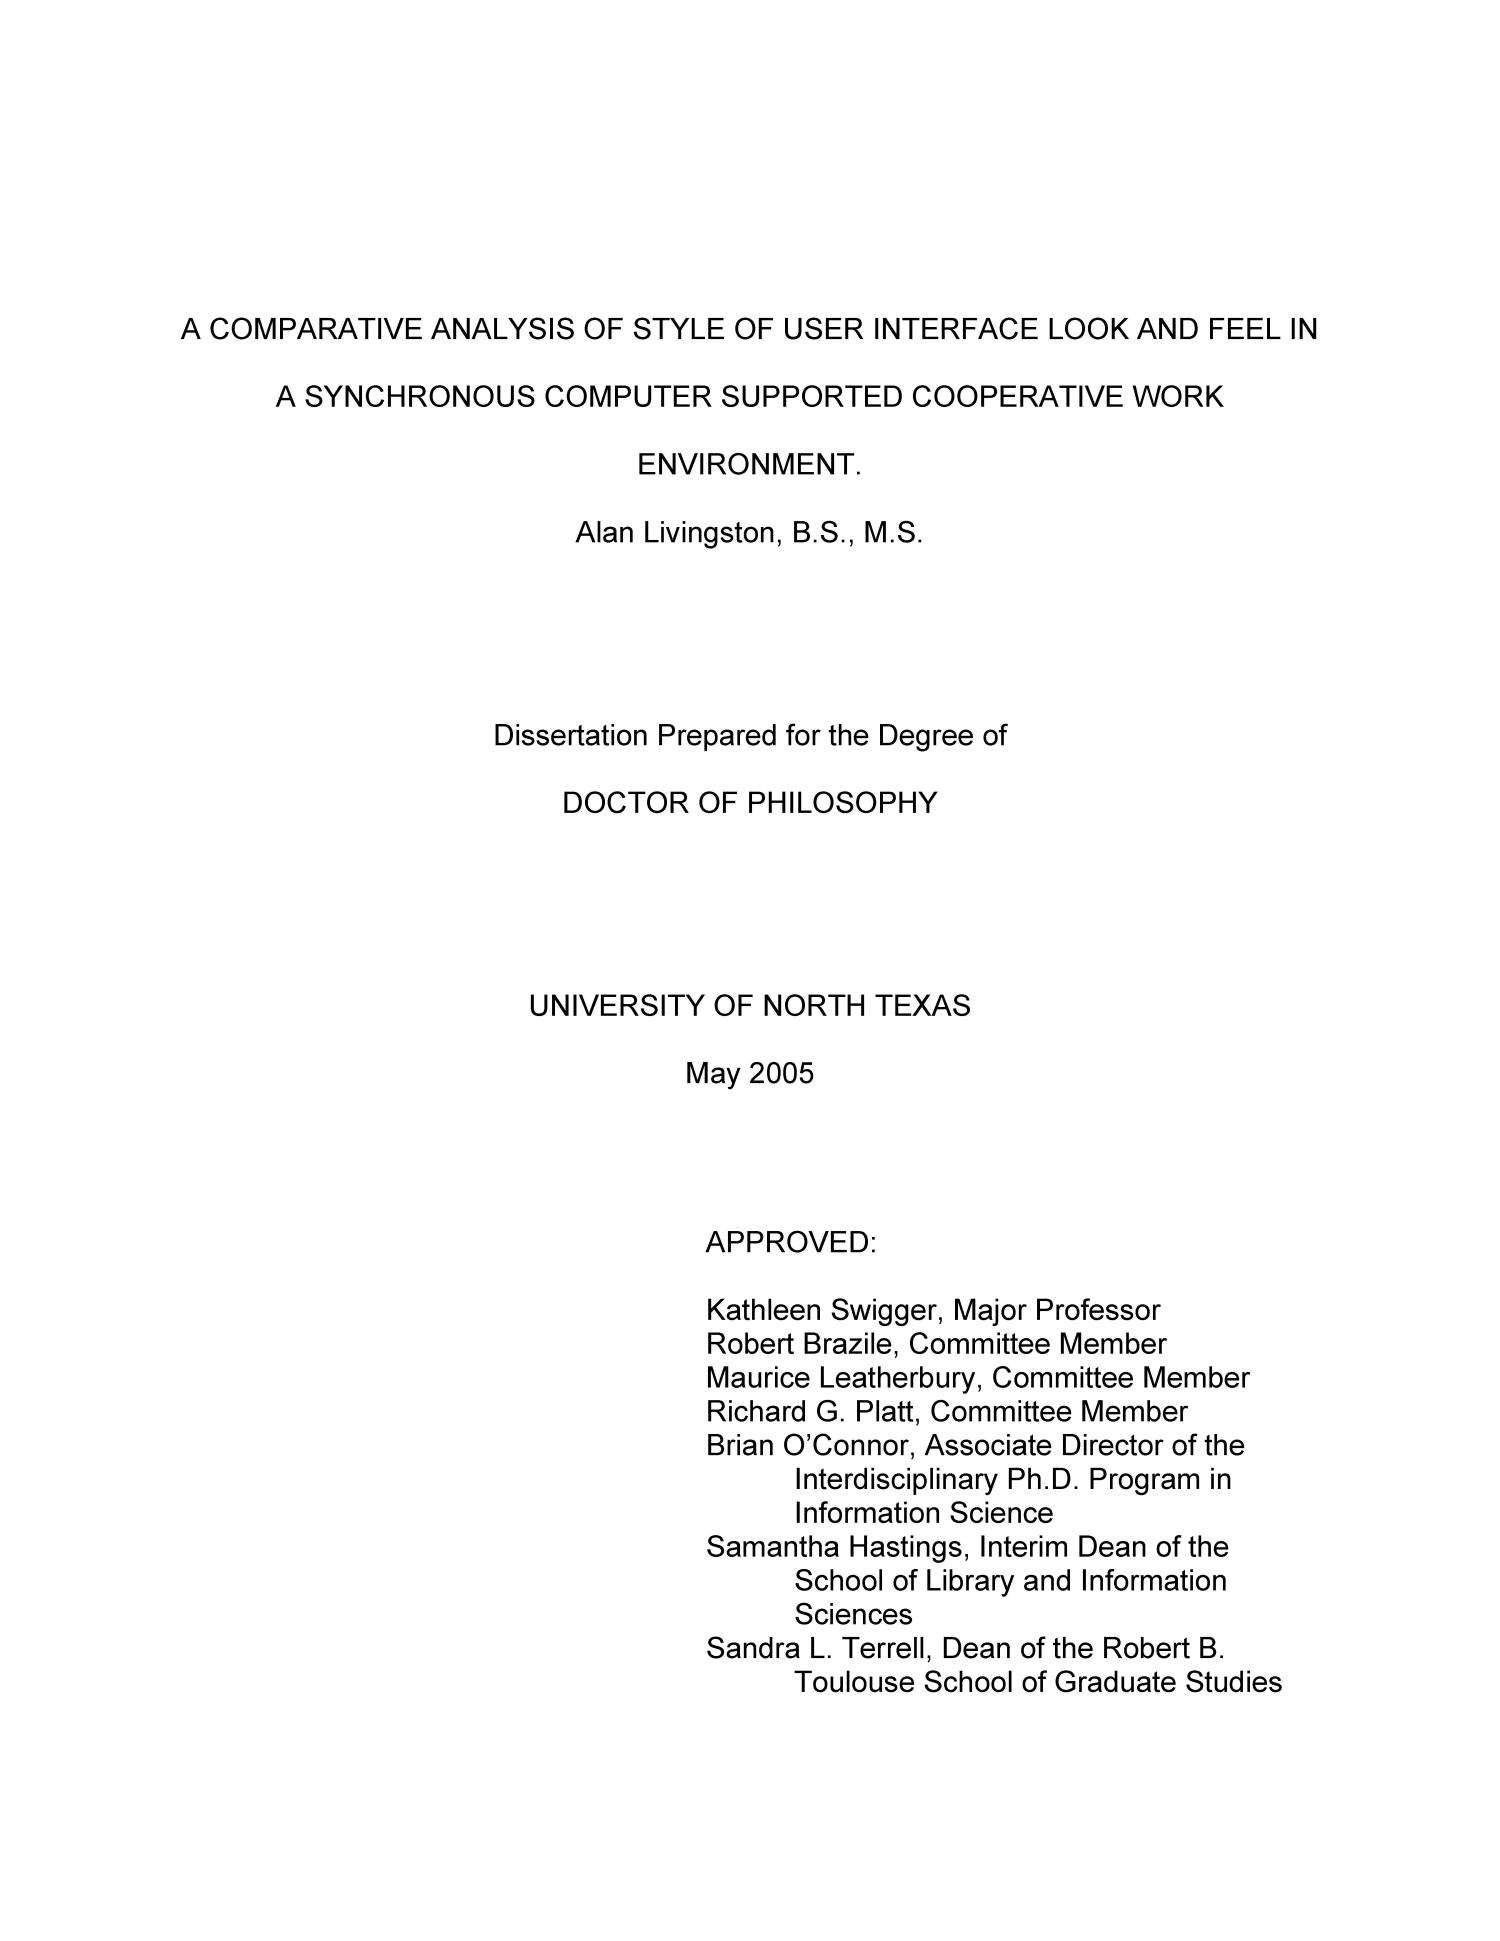 A Comparative Analysis of Style of User Interface Look and Feel in a Synchronous Computer Supported Cooperative Work Environment                                                                                                      Title Page